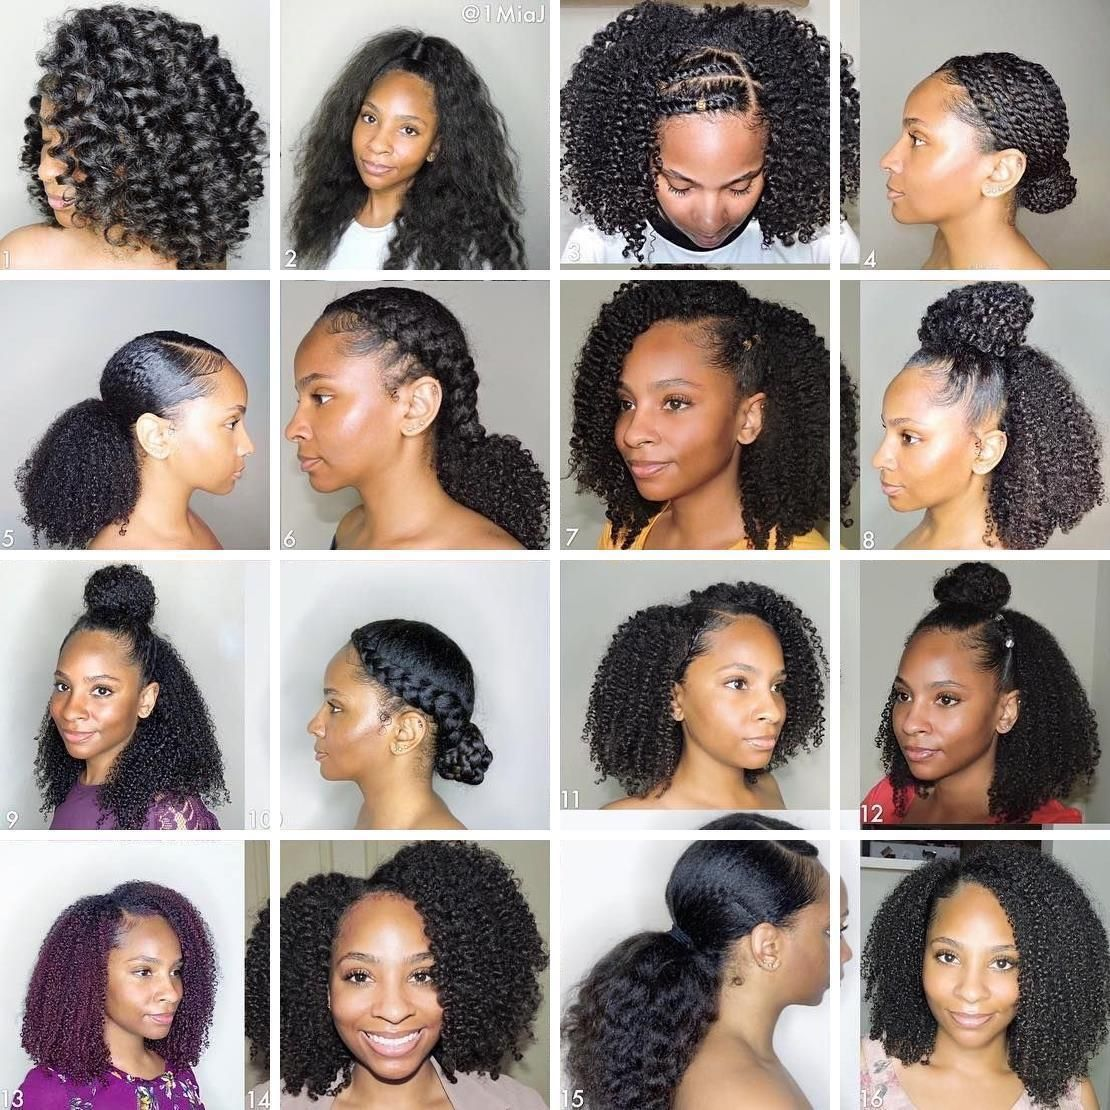 Natural Hair Salon Completely Natural Hair Products Extra Short Natural Hairstyles Natural Hair Styles Easy Curly Hair Styles Naturally Natural Hair Styles